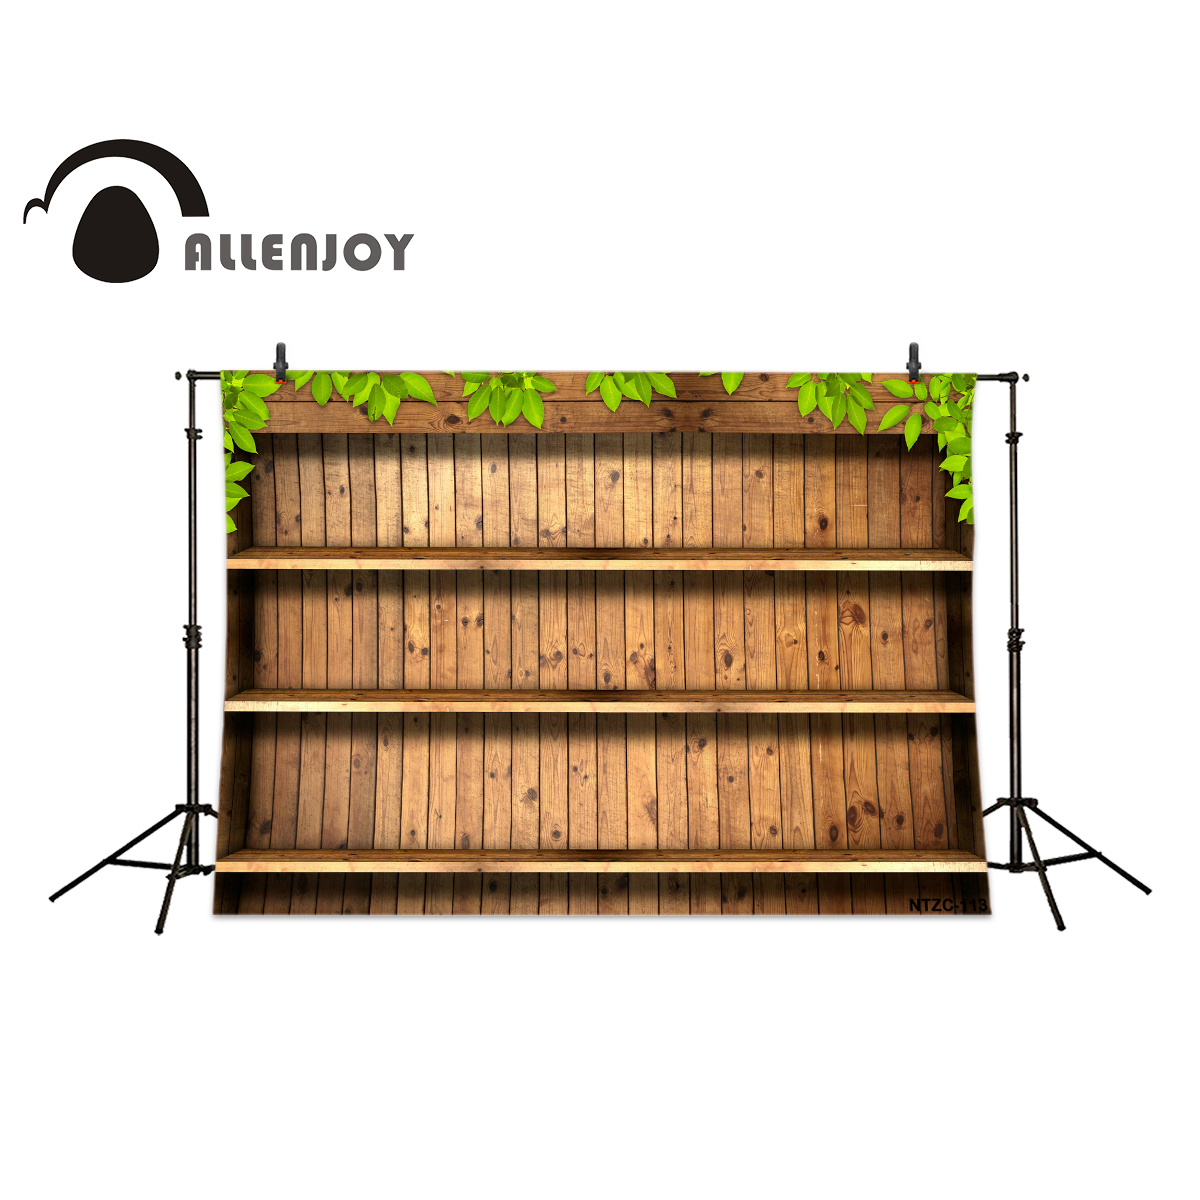 Allenjoy photography backdrops Wooden shelves plant wood brick wall backgrounds for photo studio allenjoy photography backdrops neat wooden structure wooden wall wood brick wall backgrounds for photo studio